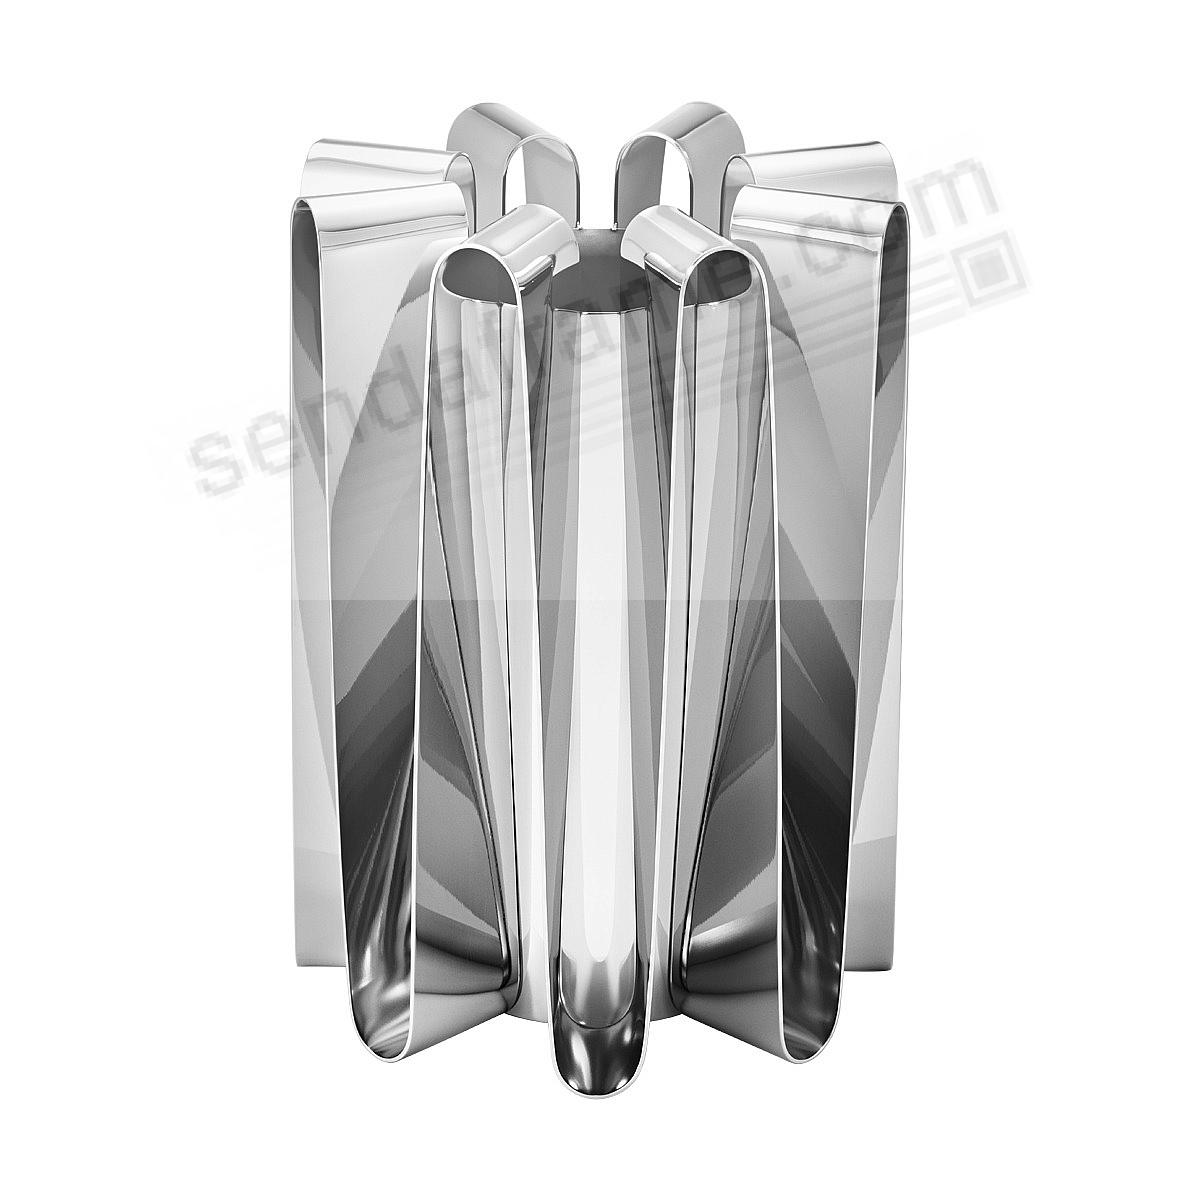 The FREQUENCY VASE (LG - 8in) Stainless Steel by Georg Jensen®